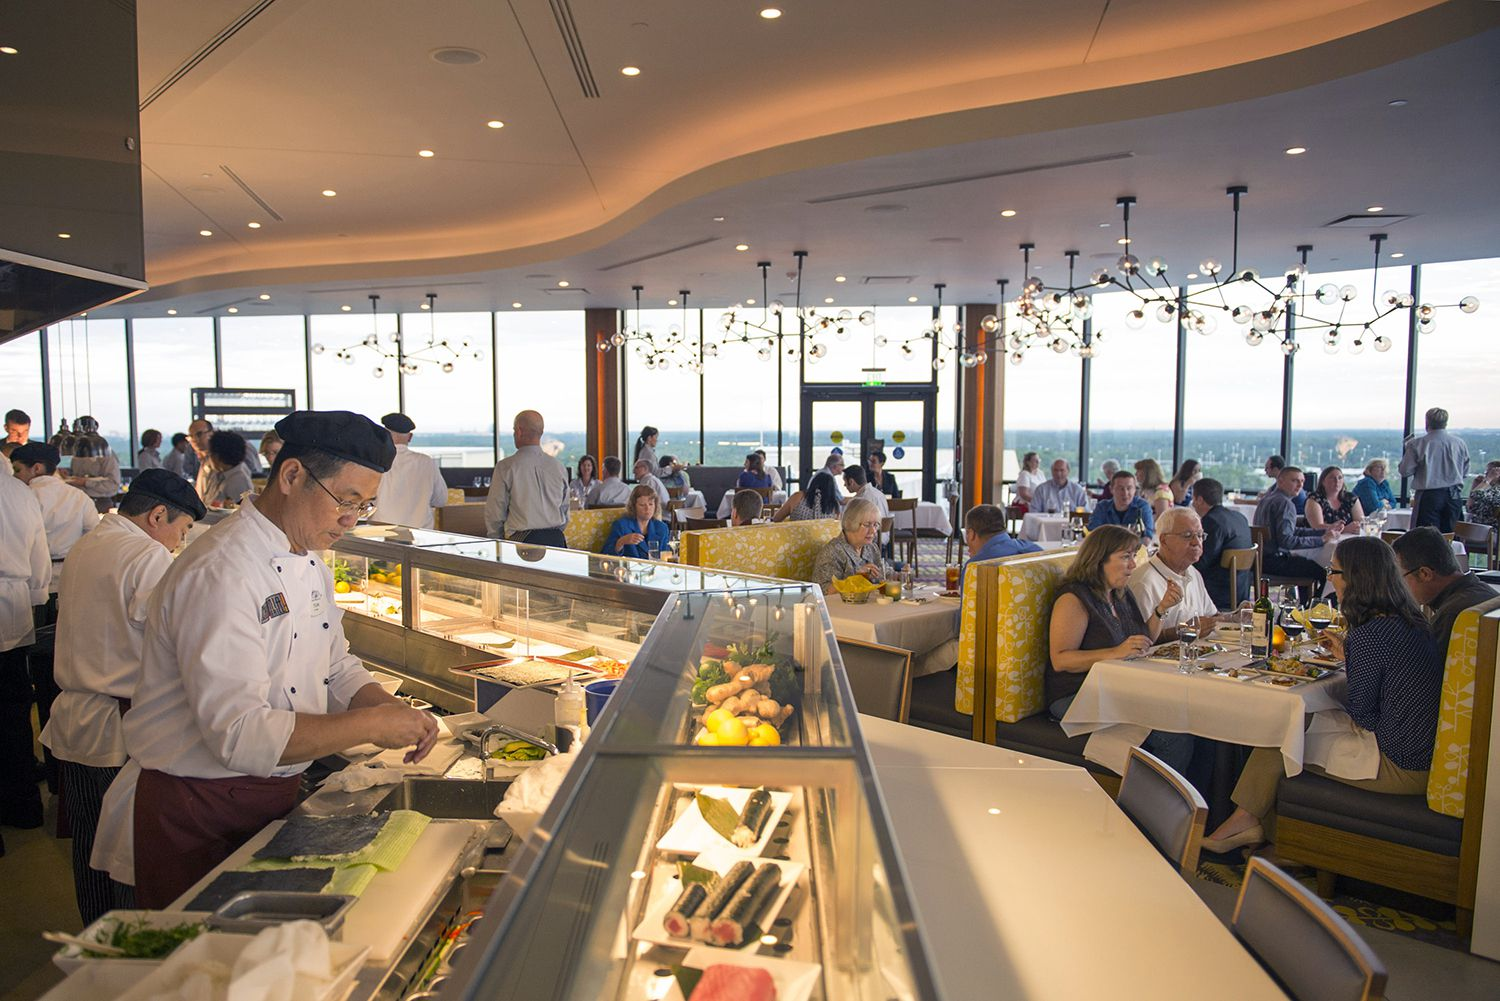 The Best Restaurants at Disney World